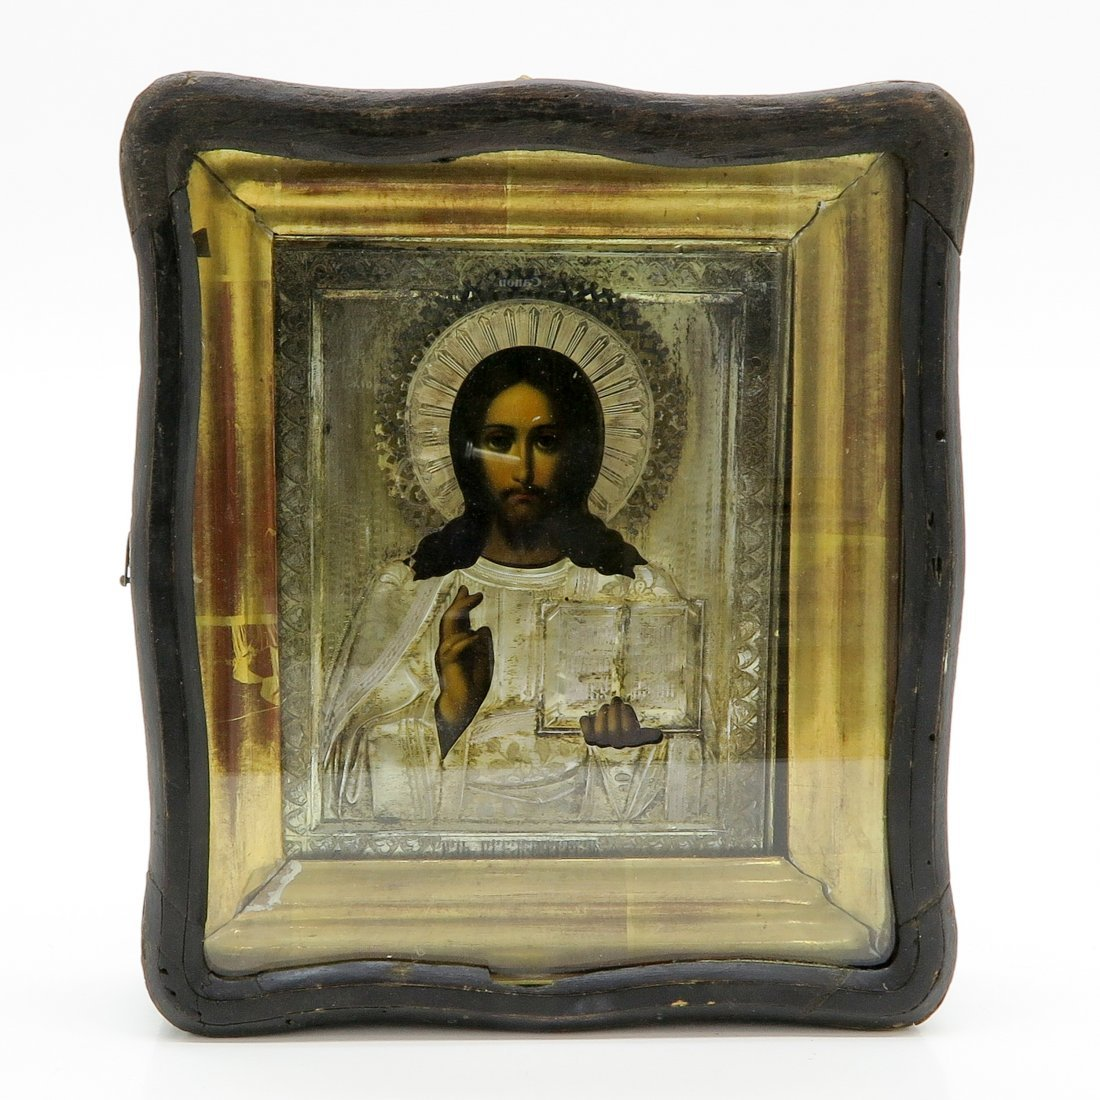 A Fine 19th Century Russian Icon in Silver Mounting